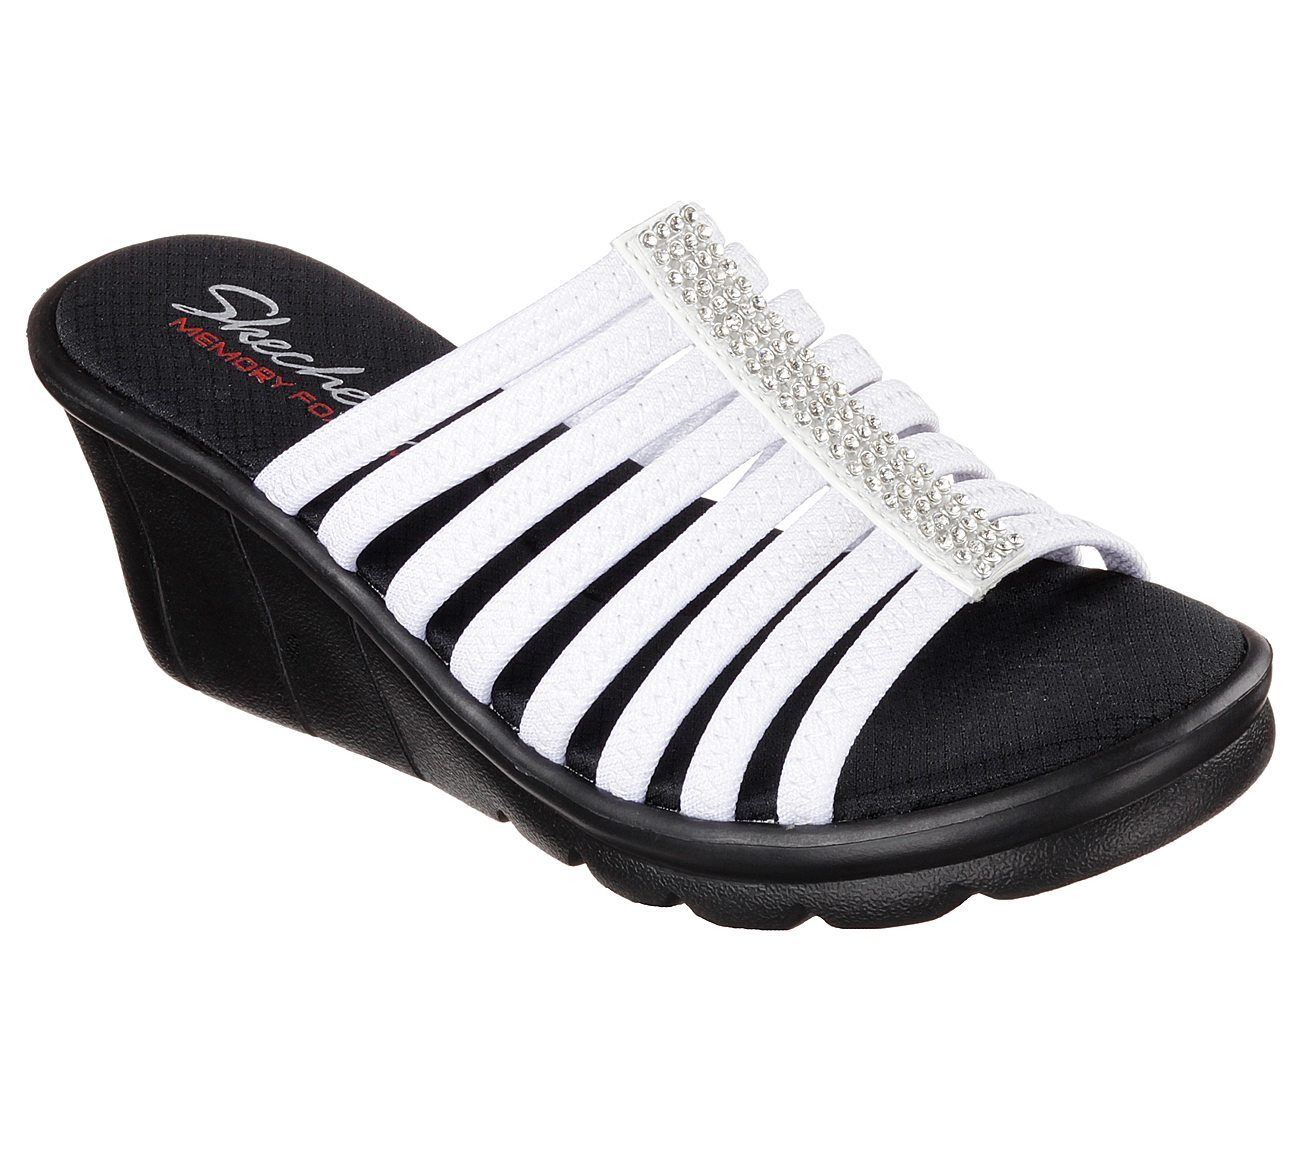 5c1ff31d7adf Buy SKECHERS Promenade - Bewitched Comfort Sandals Shoes only  50.00